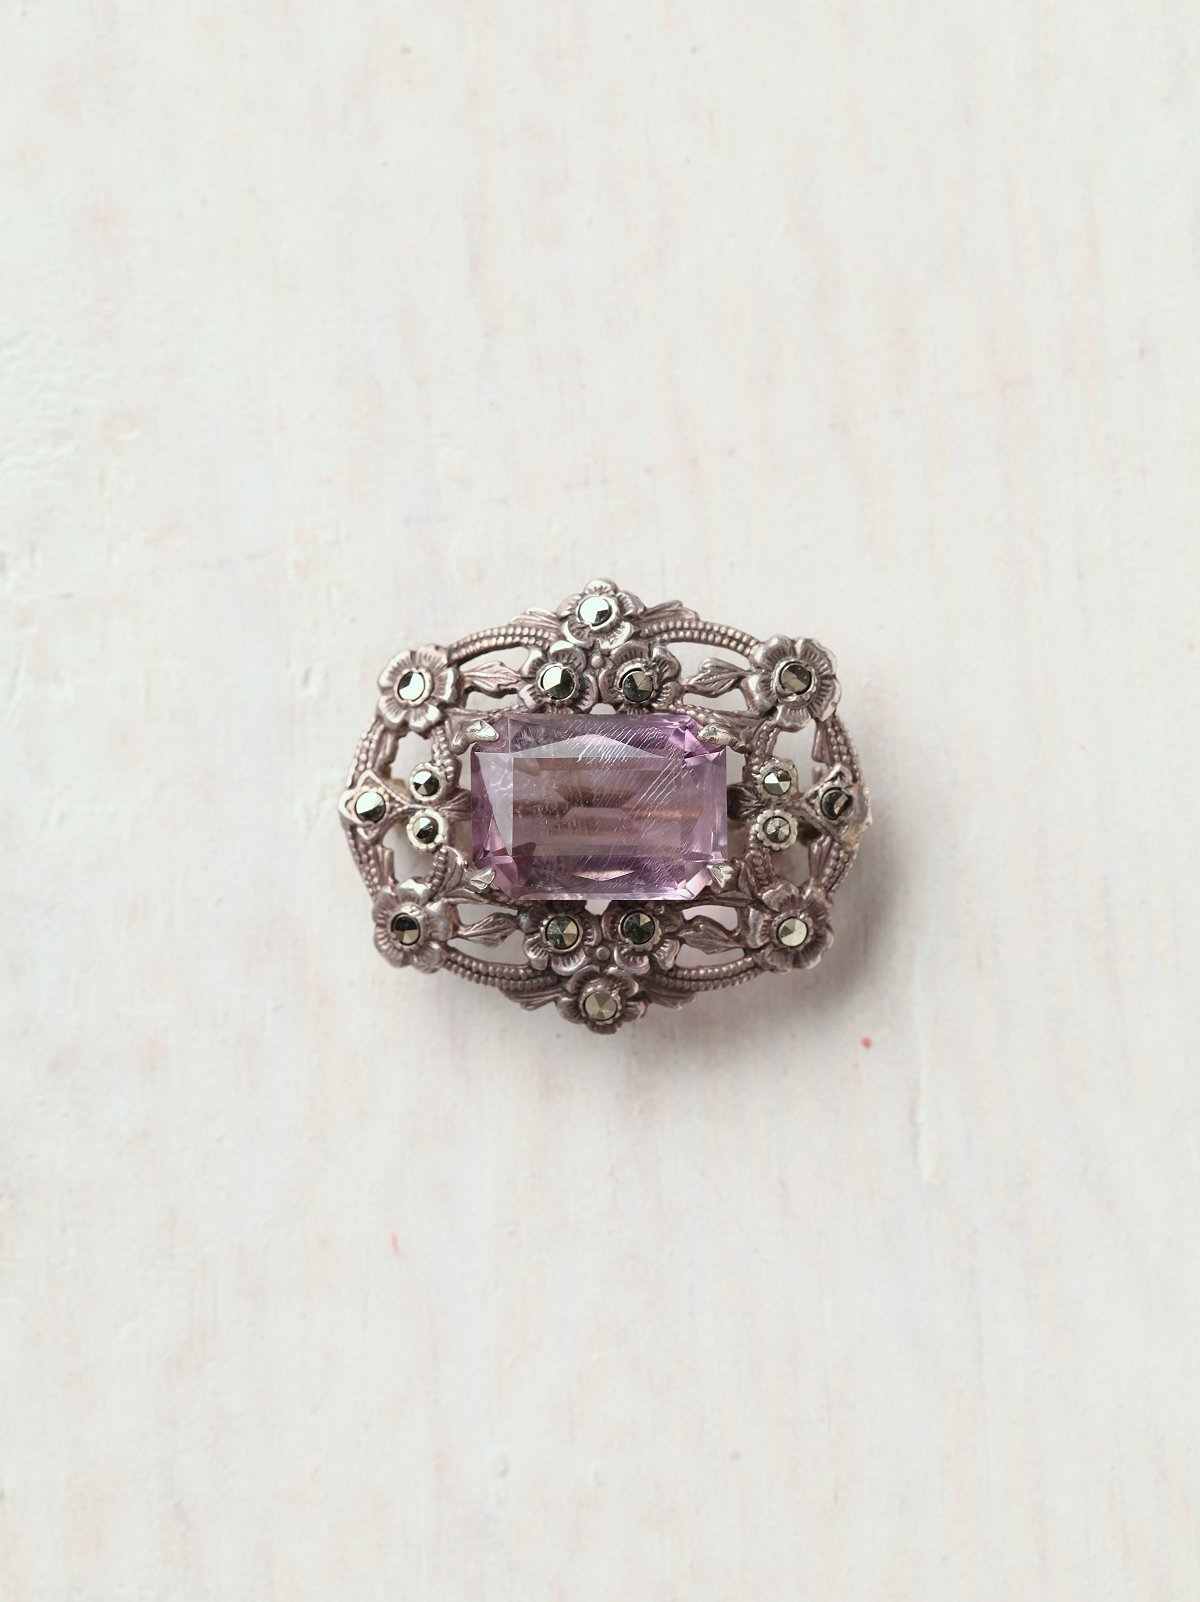 Vintage 1920s Silver Amethyst Small Pin with Flowers